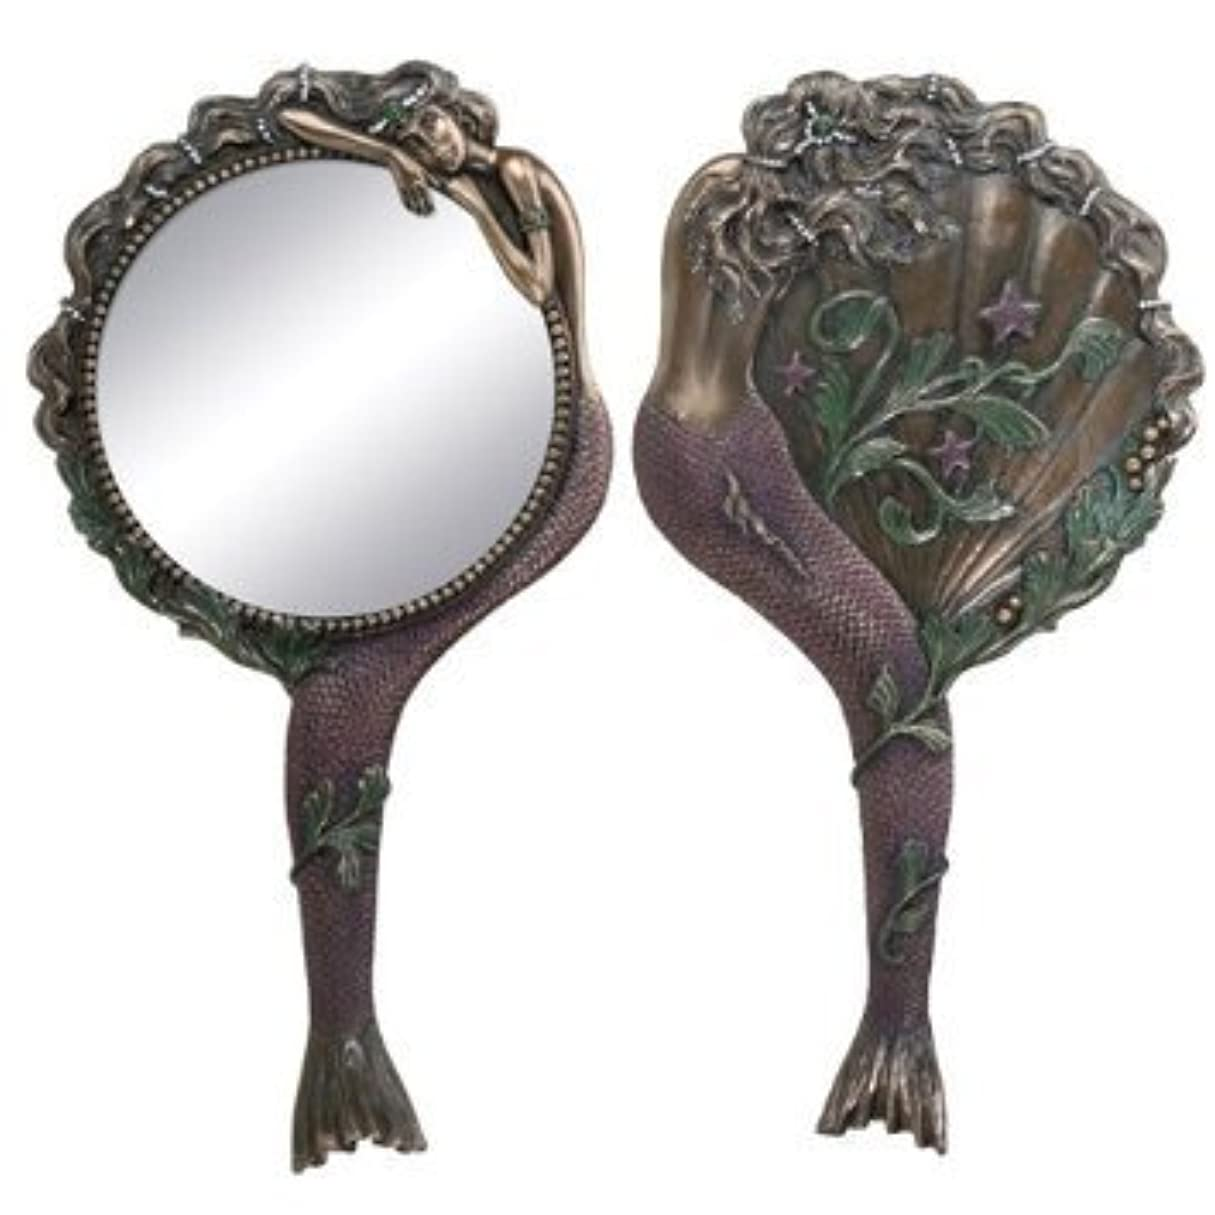 深い漏斗バルコニーArt Nouveau Collectible Mermaid Hand Mirror Nymph Decoration by Summit